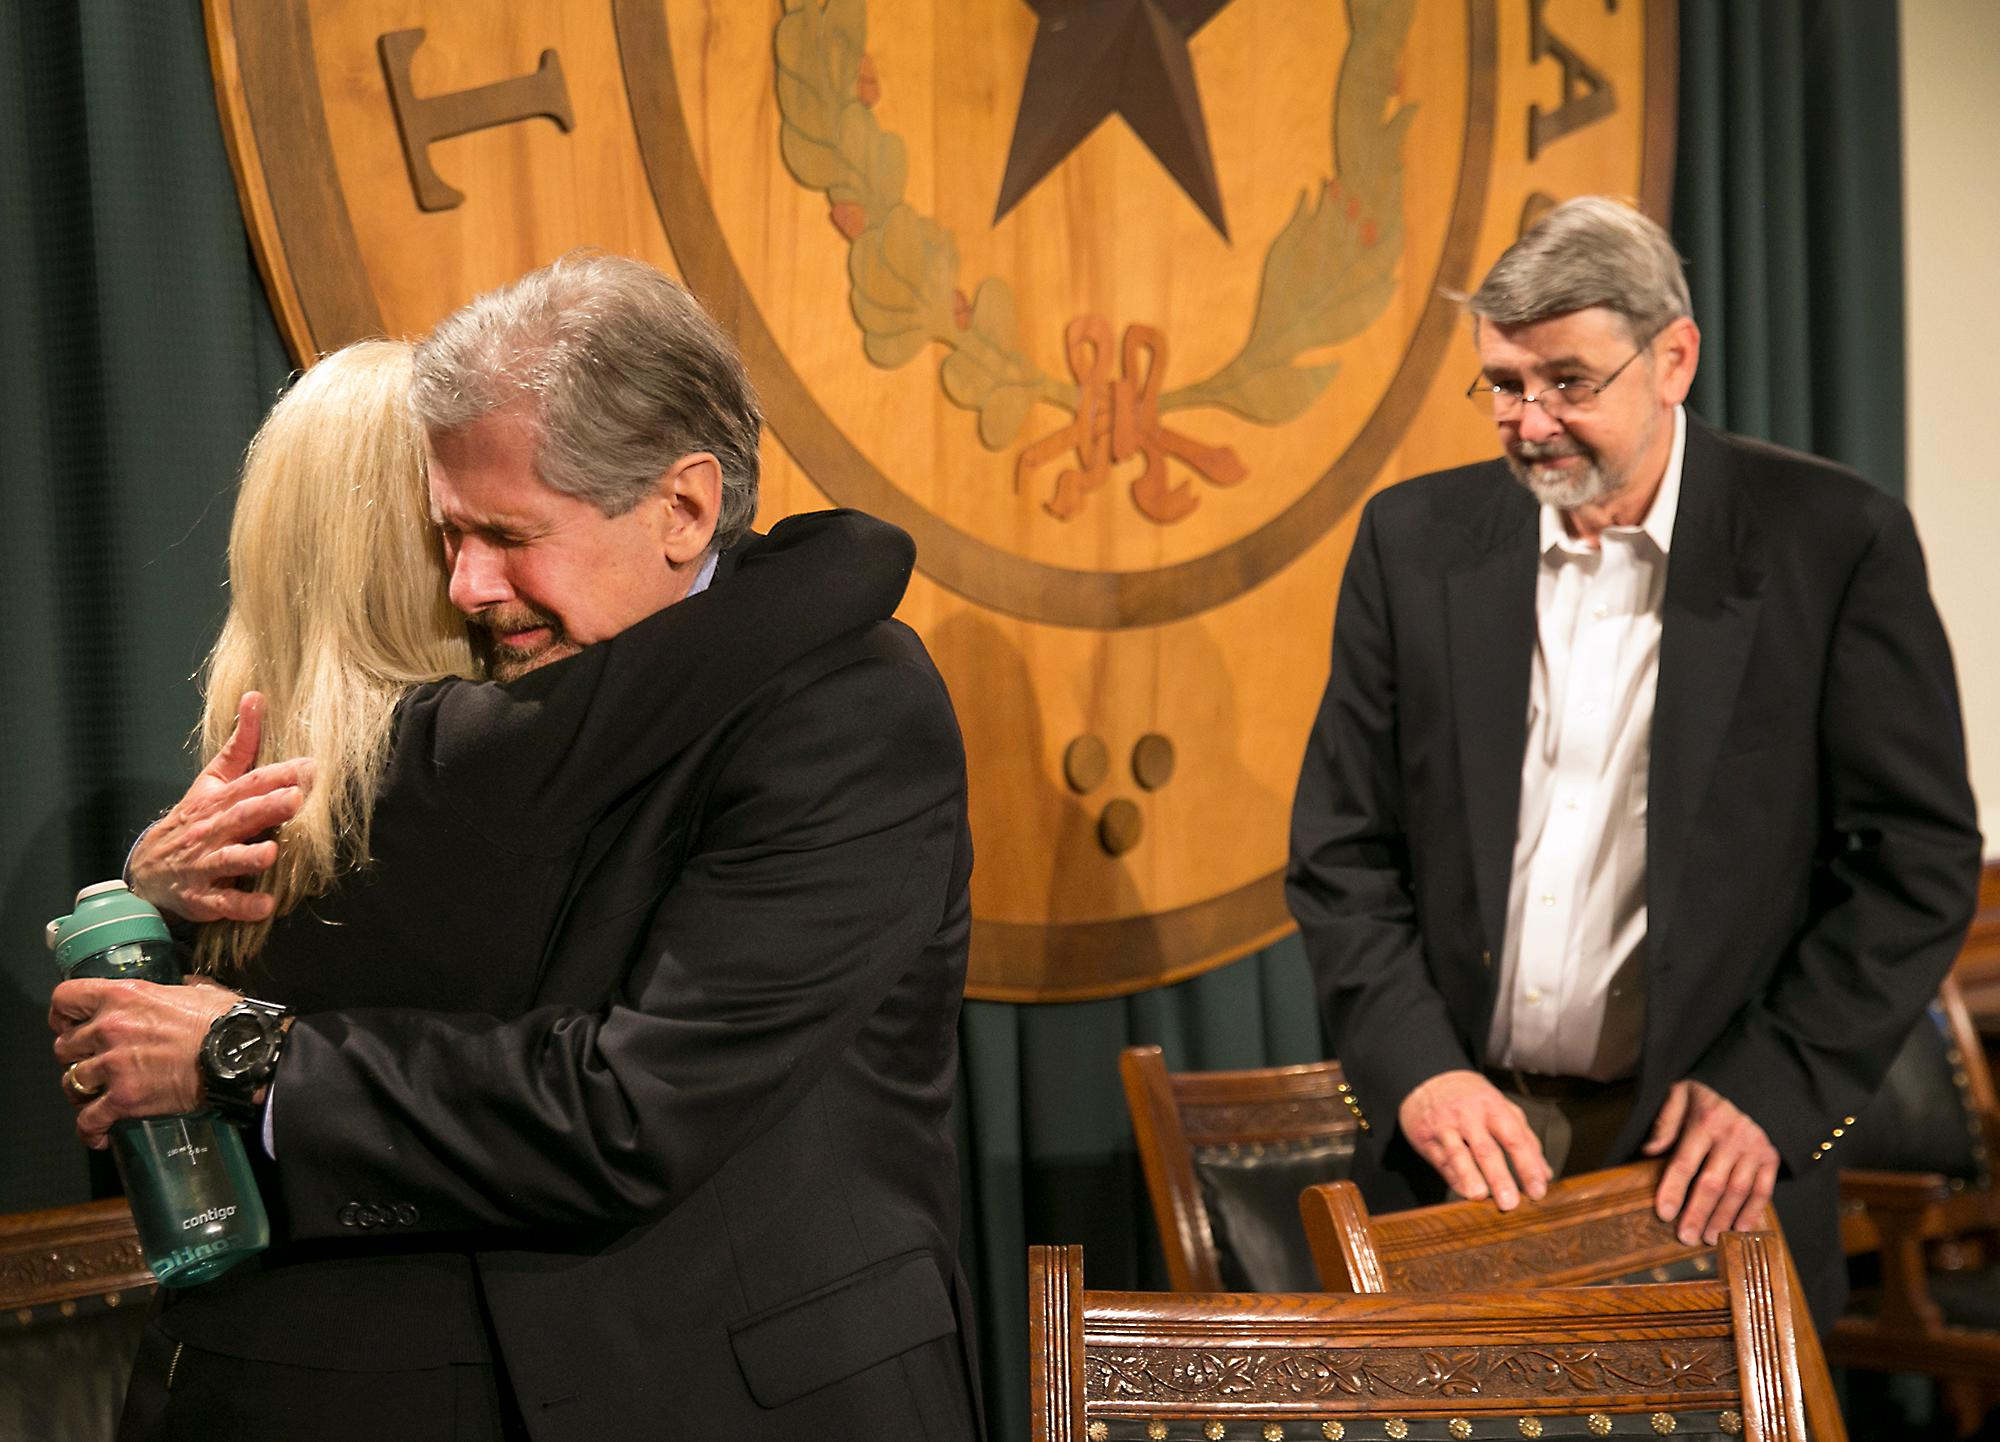 Kent Whitaker embraces his wife Tanya as his brother Keith Whitaker waits in support at back right, after reacting to the his lawyer Keith Hampton reading an email from the Texas Board of Pardons and Paroles which voted unanimously to recommend clemency for death row inmate Thomas Whitaker, Kent's son who was found guilty of setting up an ambush that killed his mother and brother in 2003. Despite the crime, his father had waged a desperate campaign to spare his life before Thursday's scheduled execution. The board recommended that Whitaker's sentence be reduced to life in prison as they read the reaction Tuesday, Feb. 20, 2018, in Austin, Texas. (Ralph Barrera/Austin American-Statesman via AP)